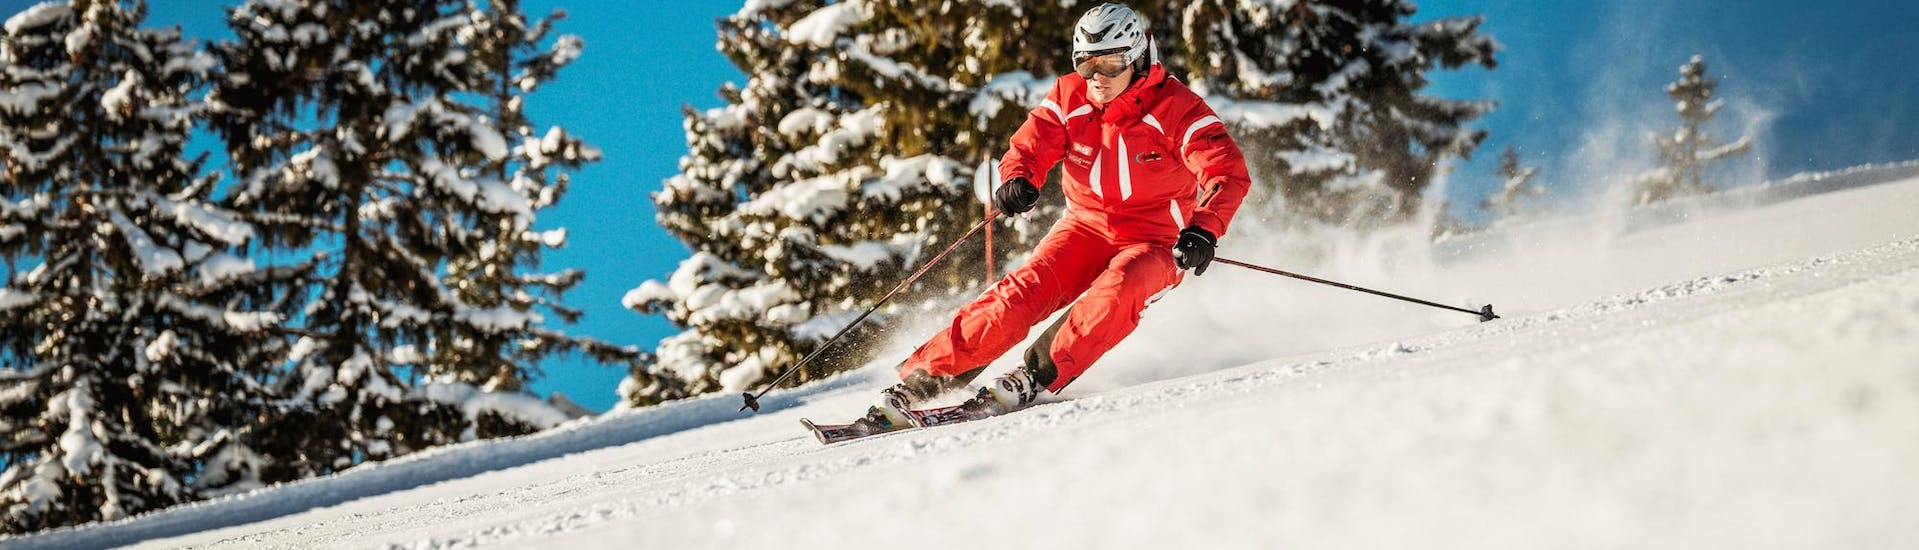 Ski Lessons for Teens & Adults for Advanced Skiers with Skischule Busslehner Achenkirch - Hero image